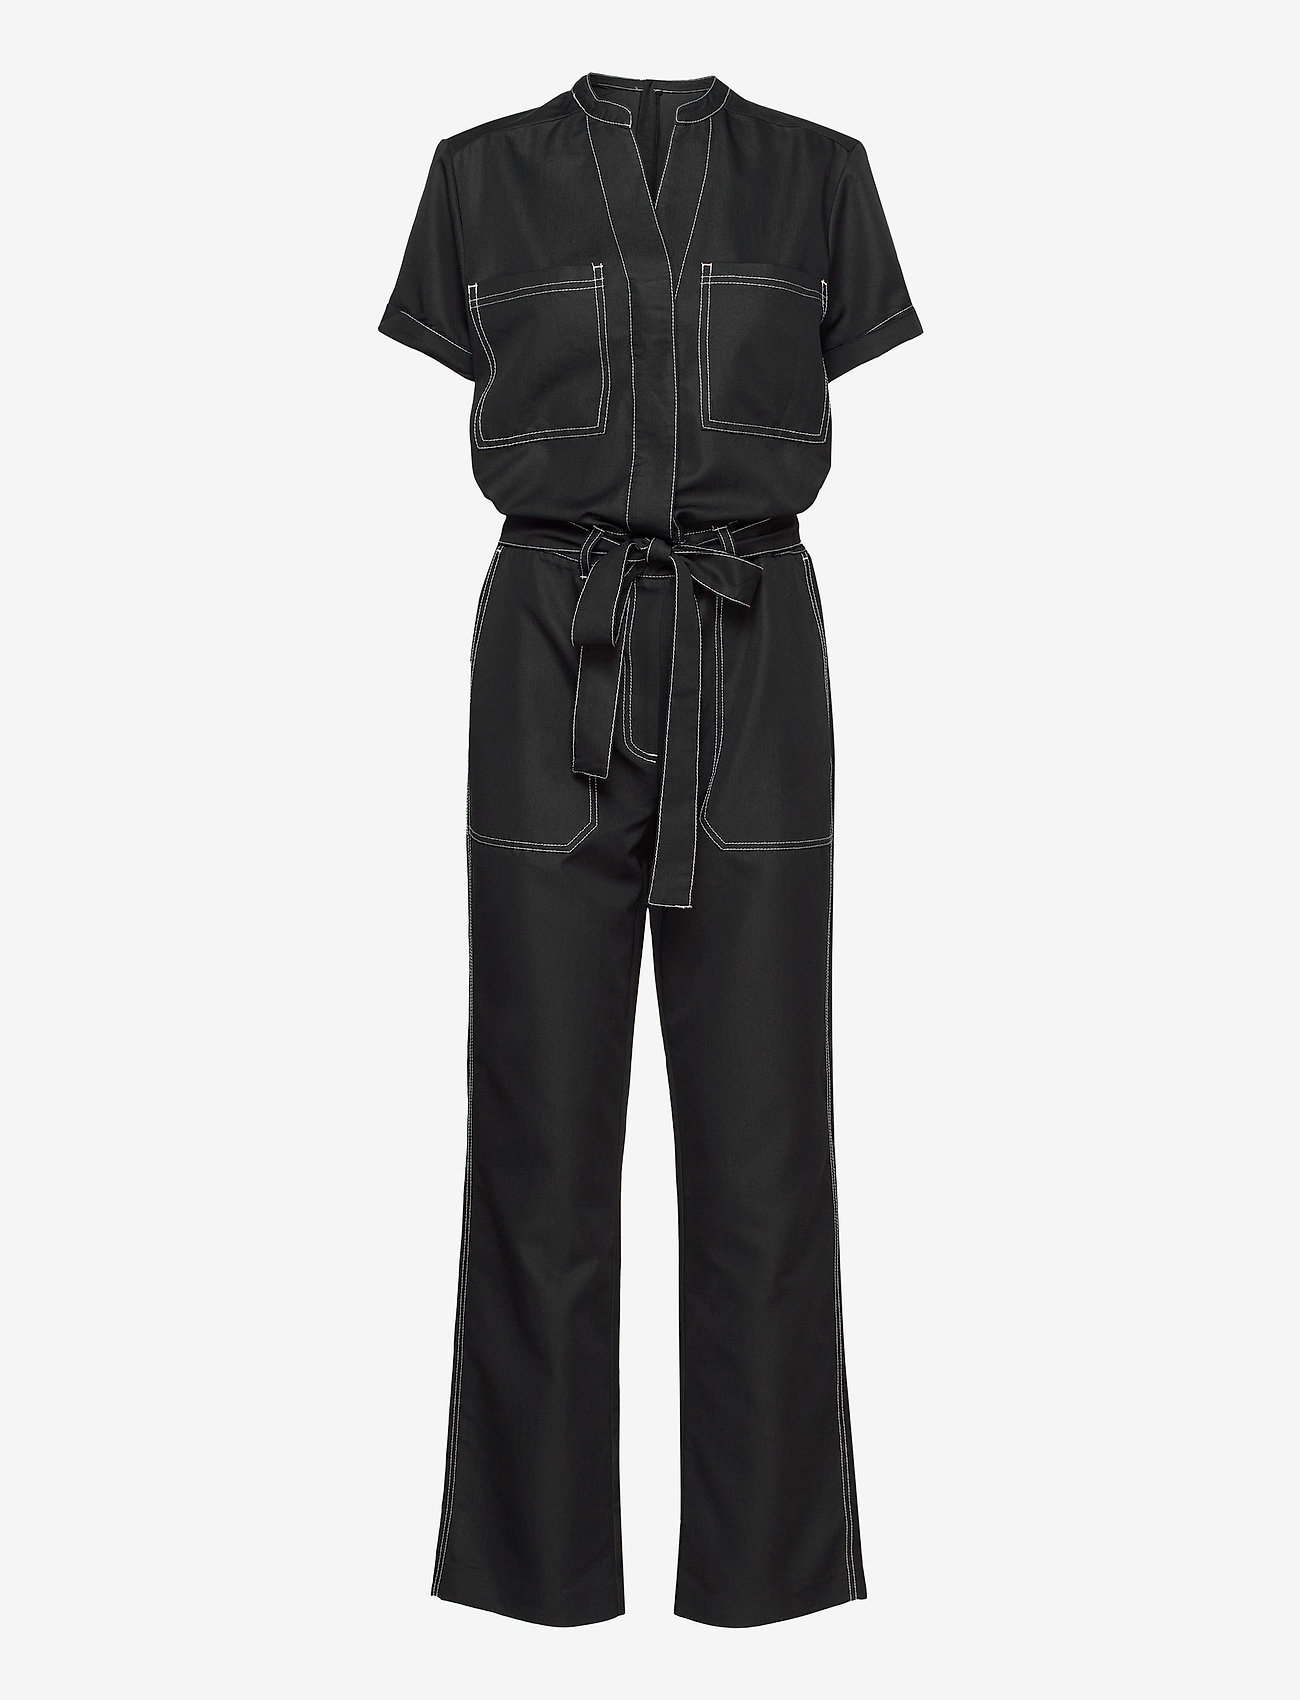 Levete Room - LR-JULIE - jumpsuits - l999 - black - 0